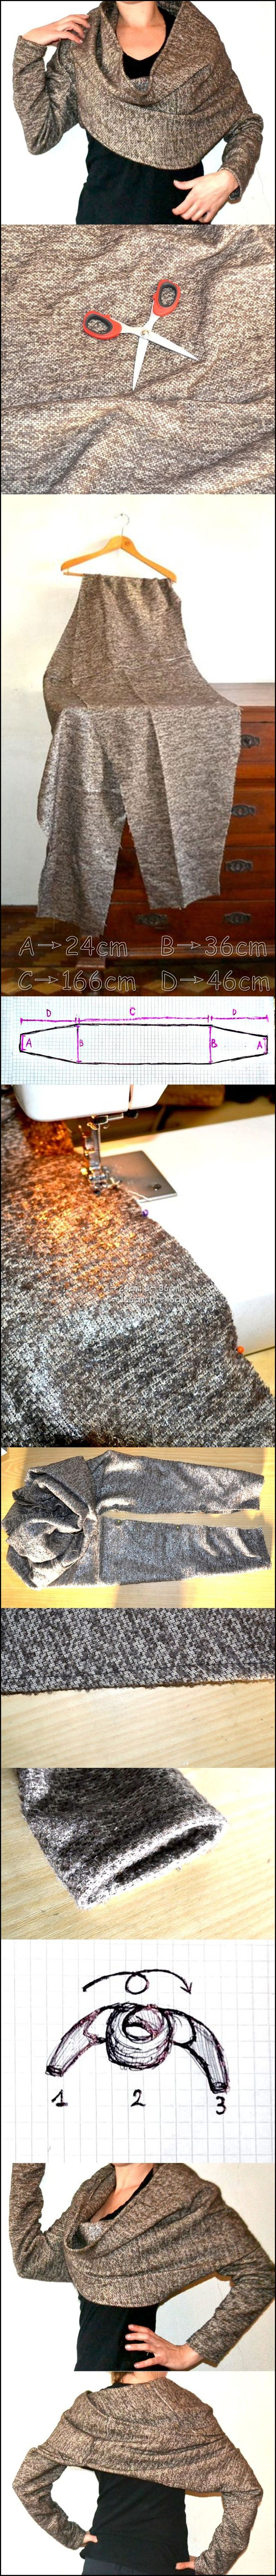 bolero wrap....cute pattern idea for using recycled sweaters or tee shirts